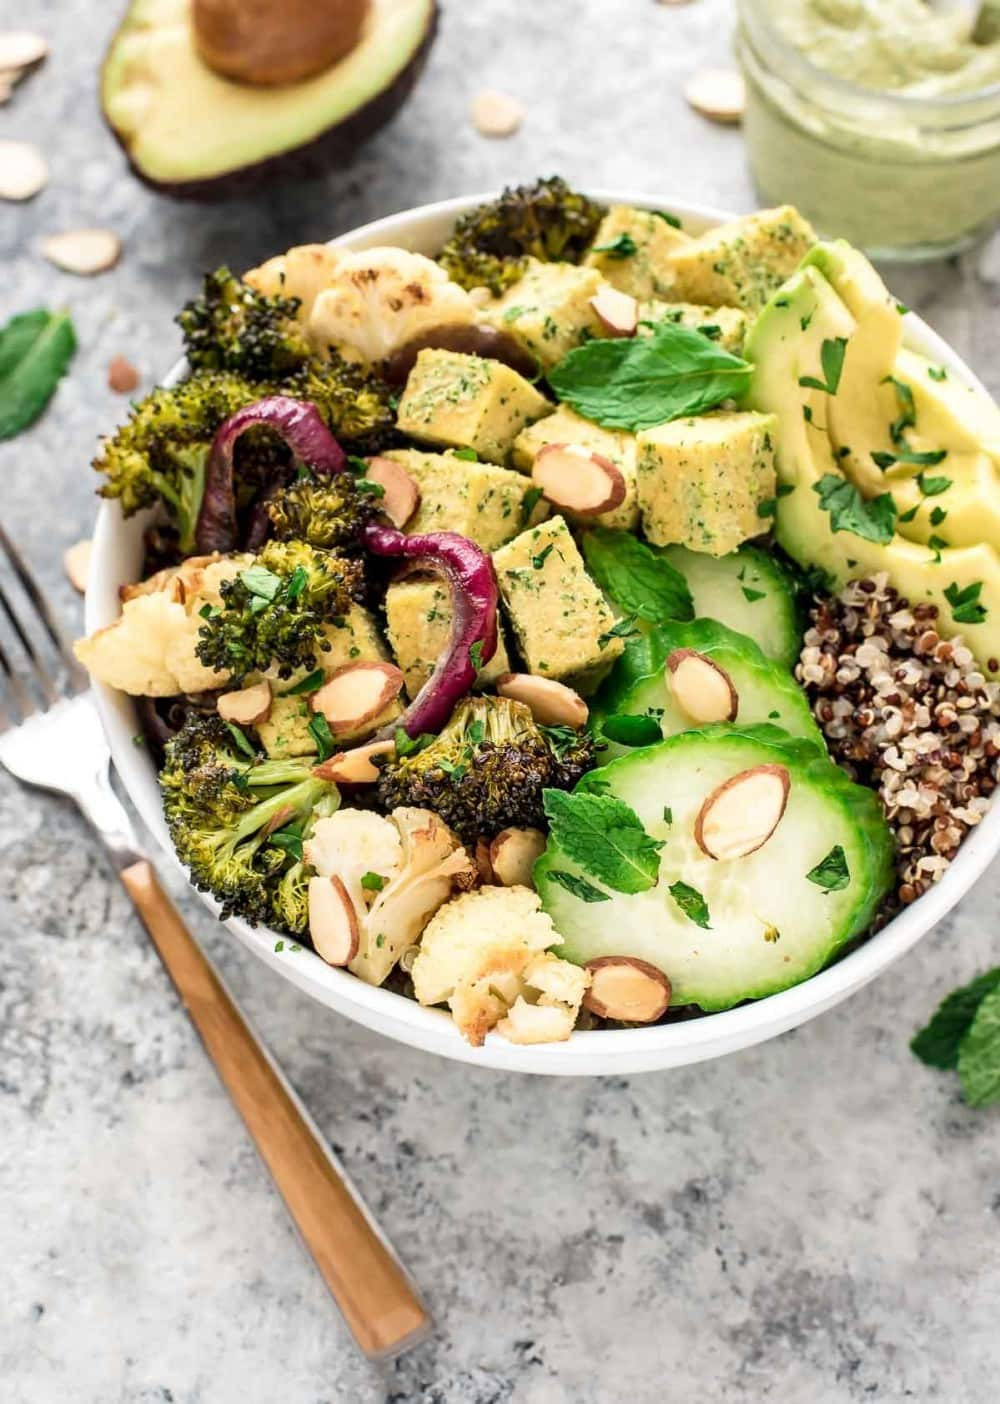 Vegan Roasted Veggie Buddha Bowl with Quinoa and Avocado